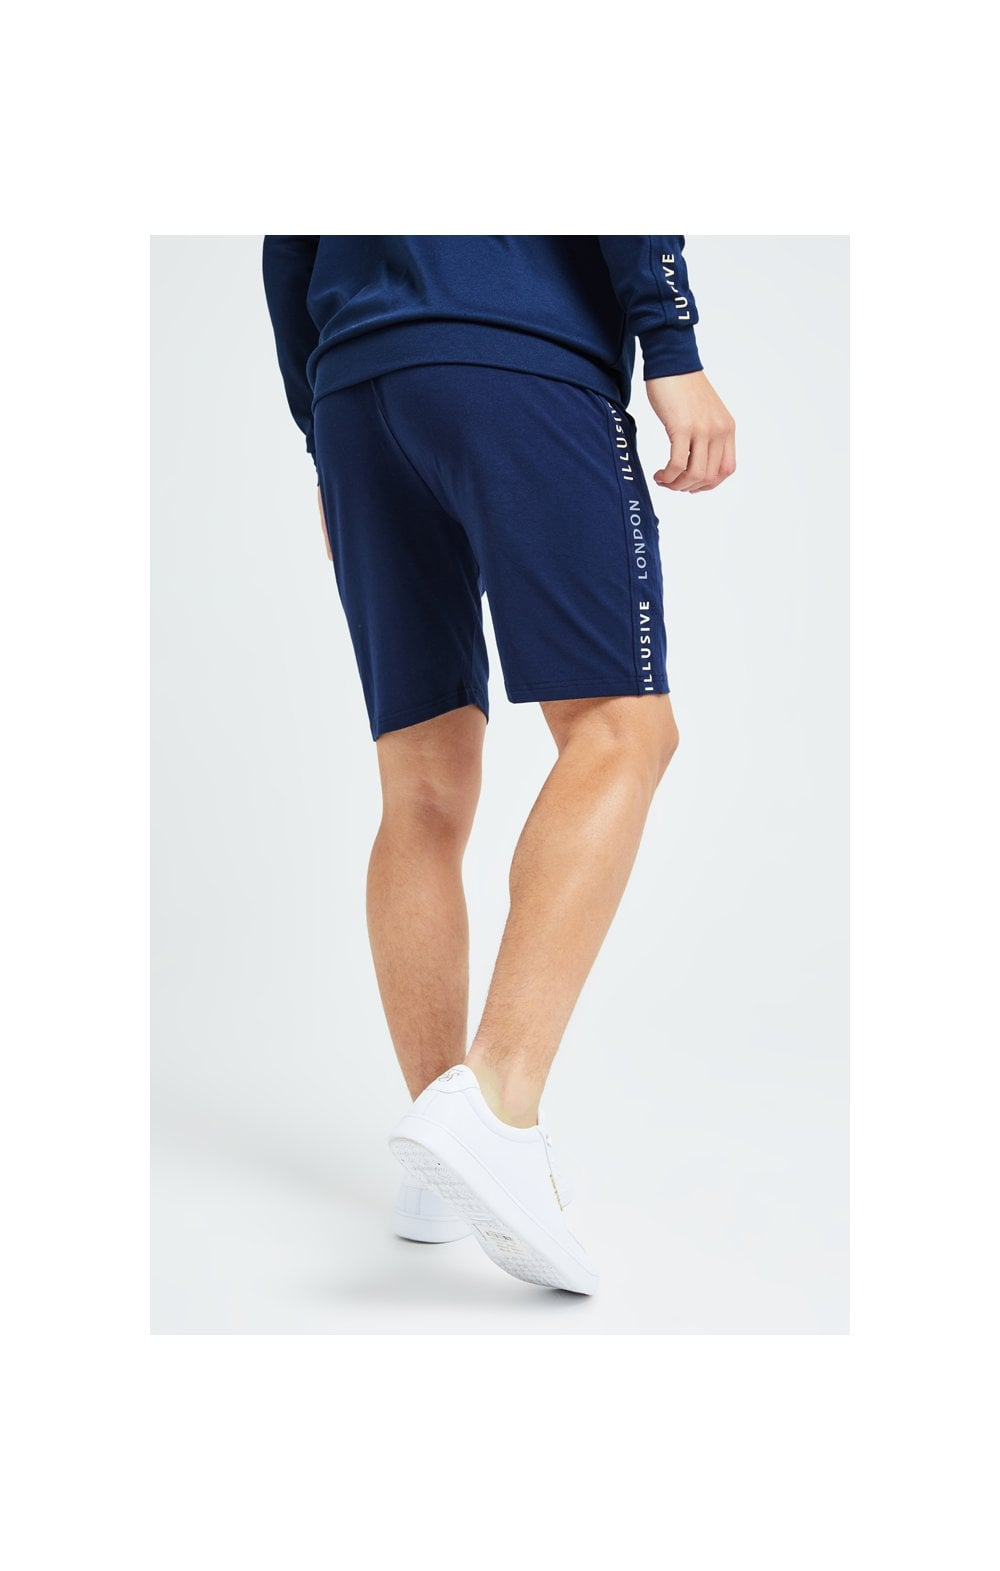 Load image into Gallery viewer, Illusive London Legacy Jersey Shorts -Navy & Cream (2)